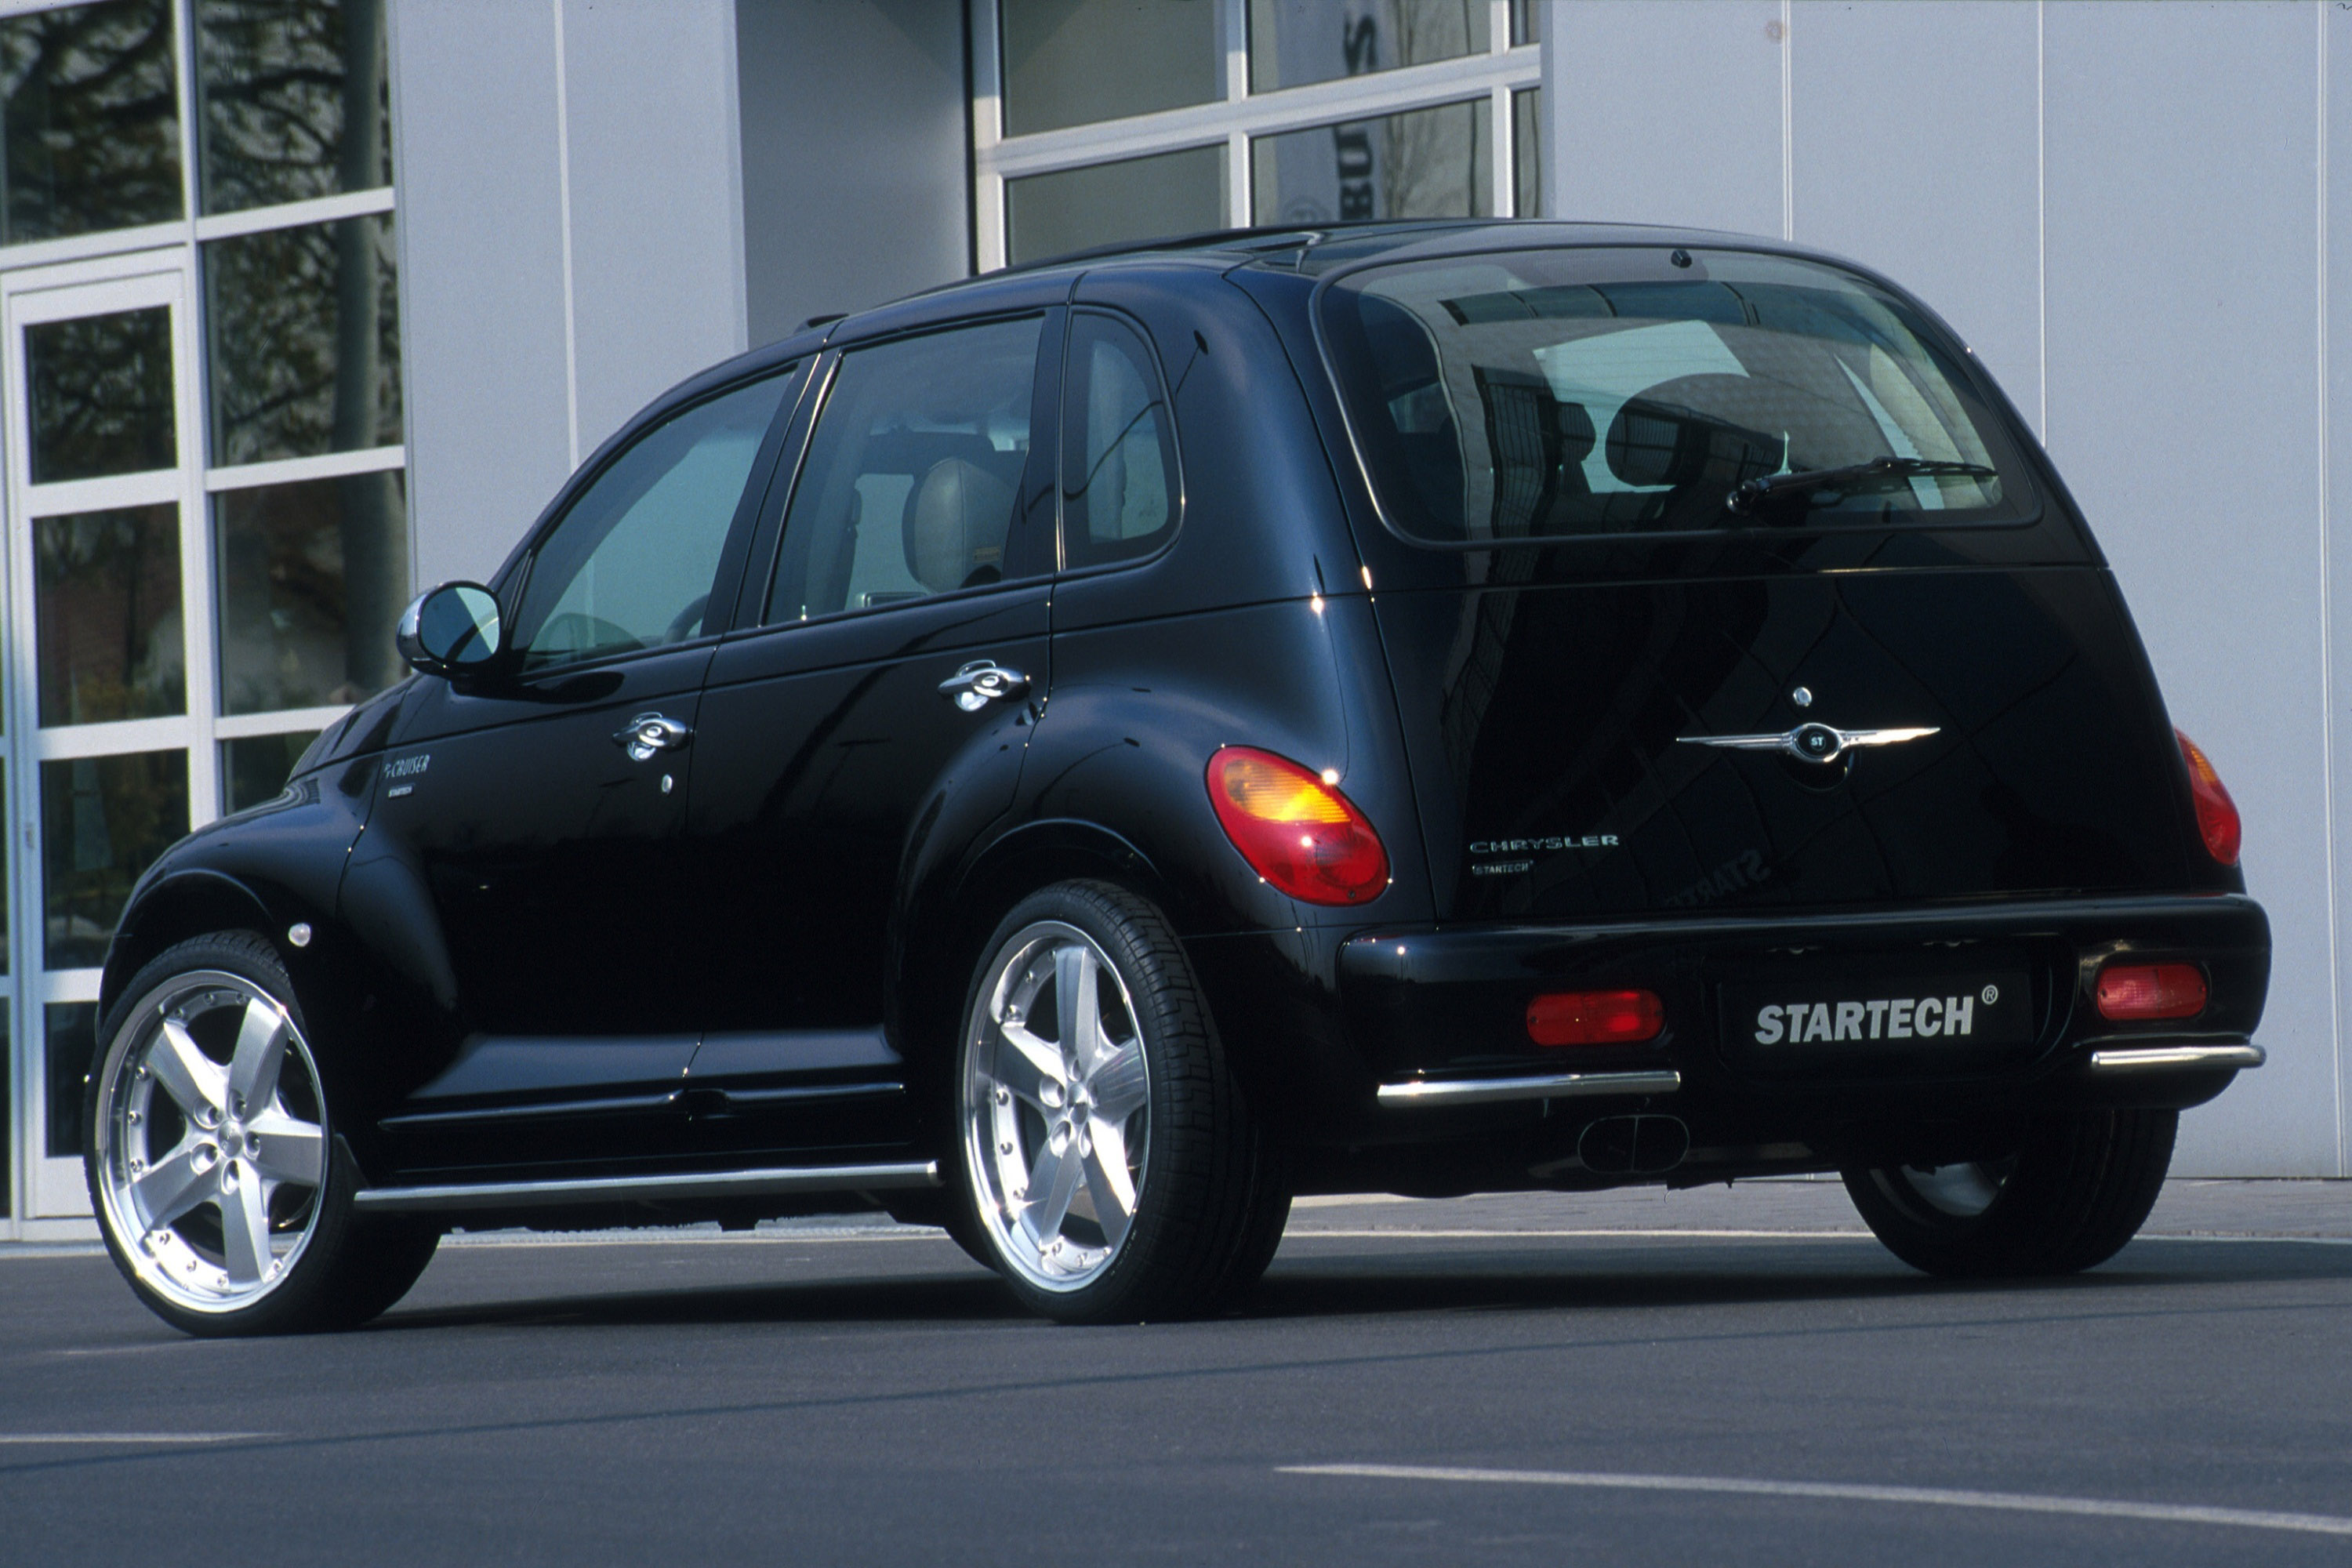 Startech Chrysler Pt Cruiser Picture 34151